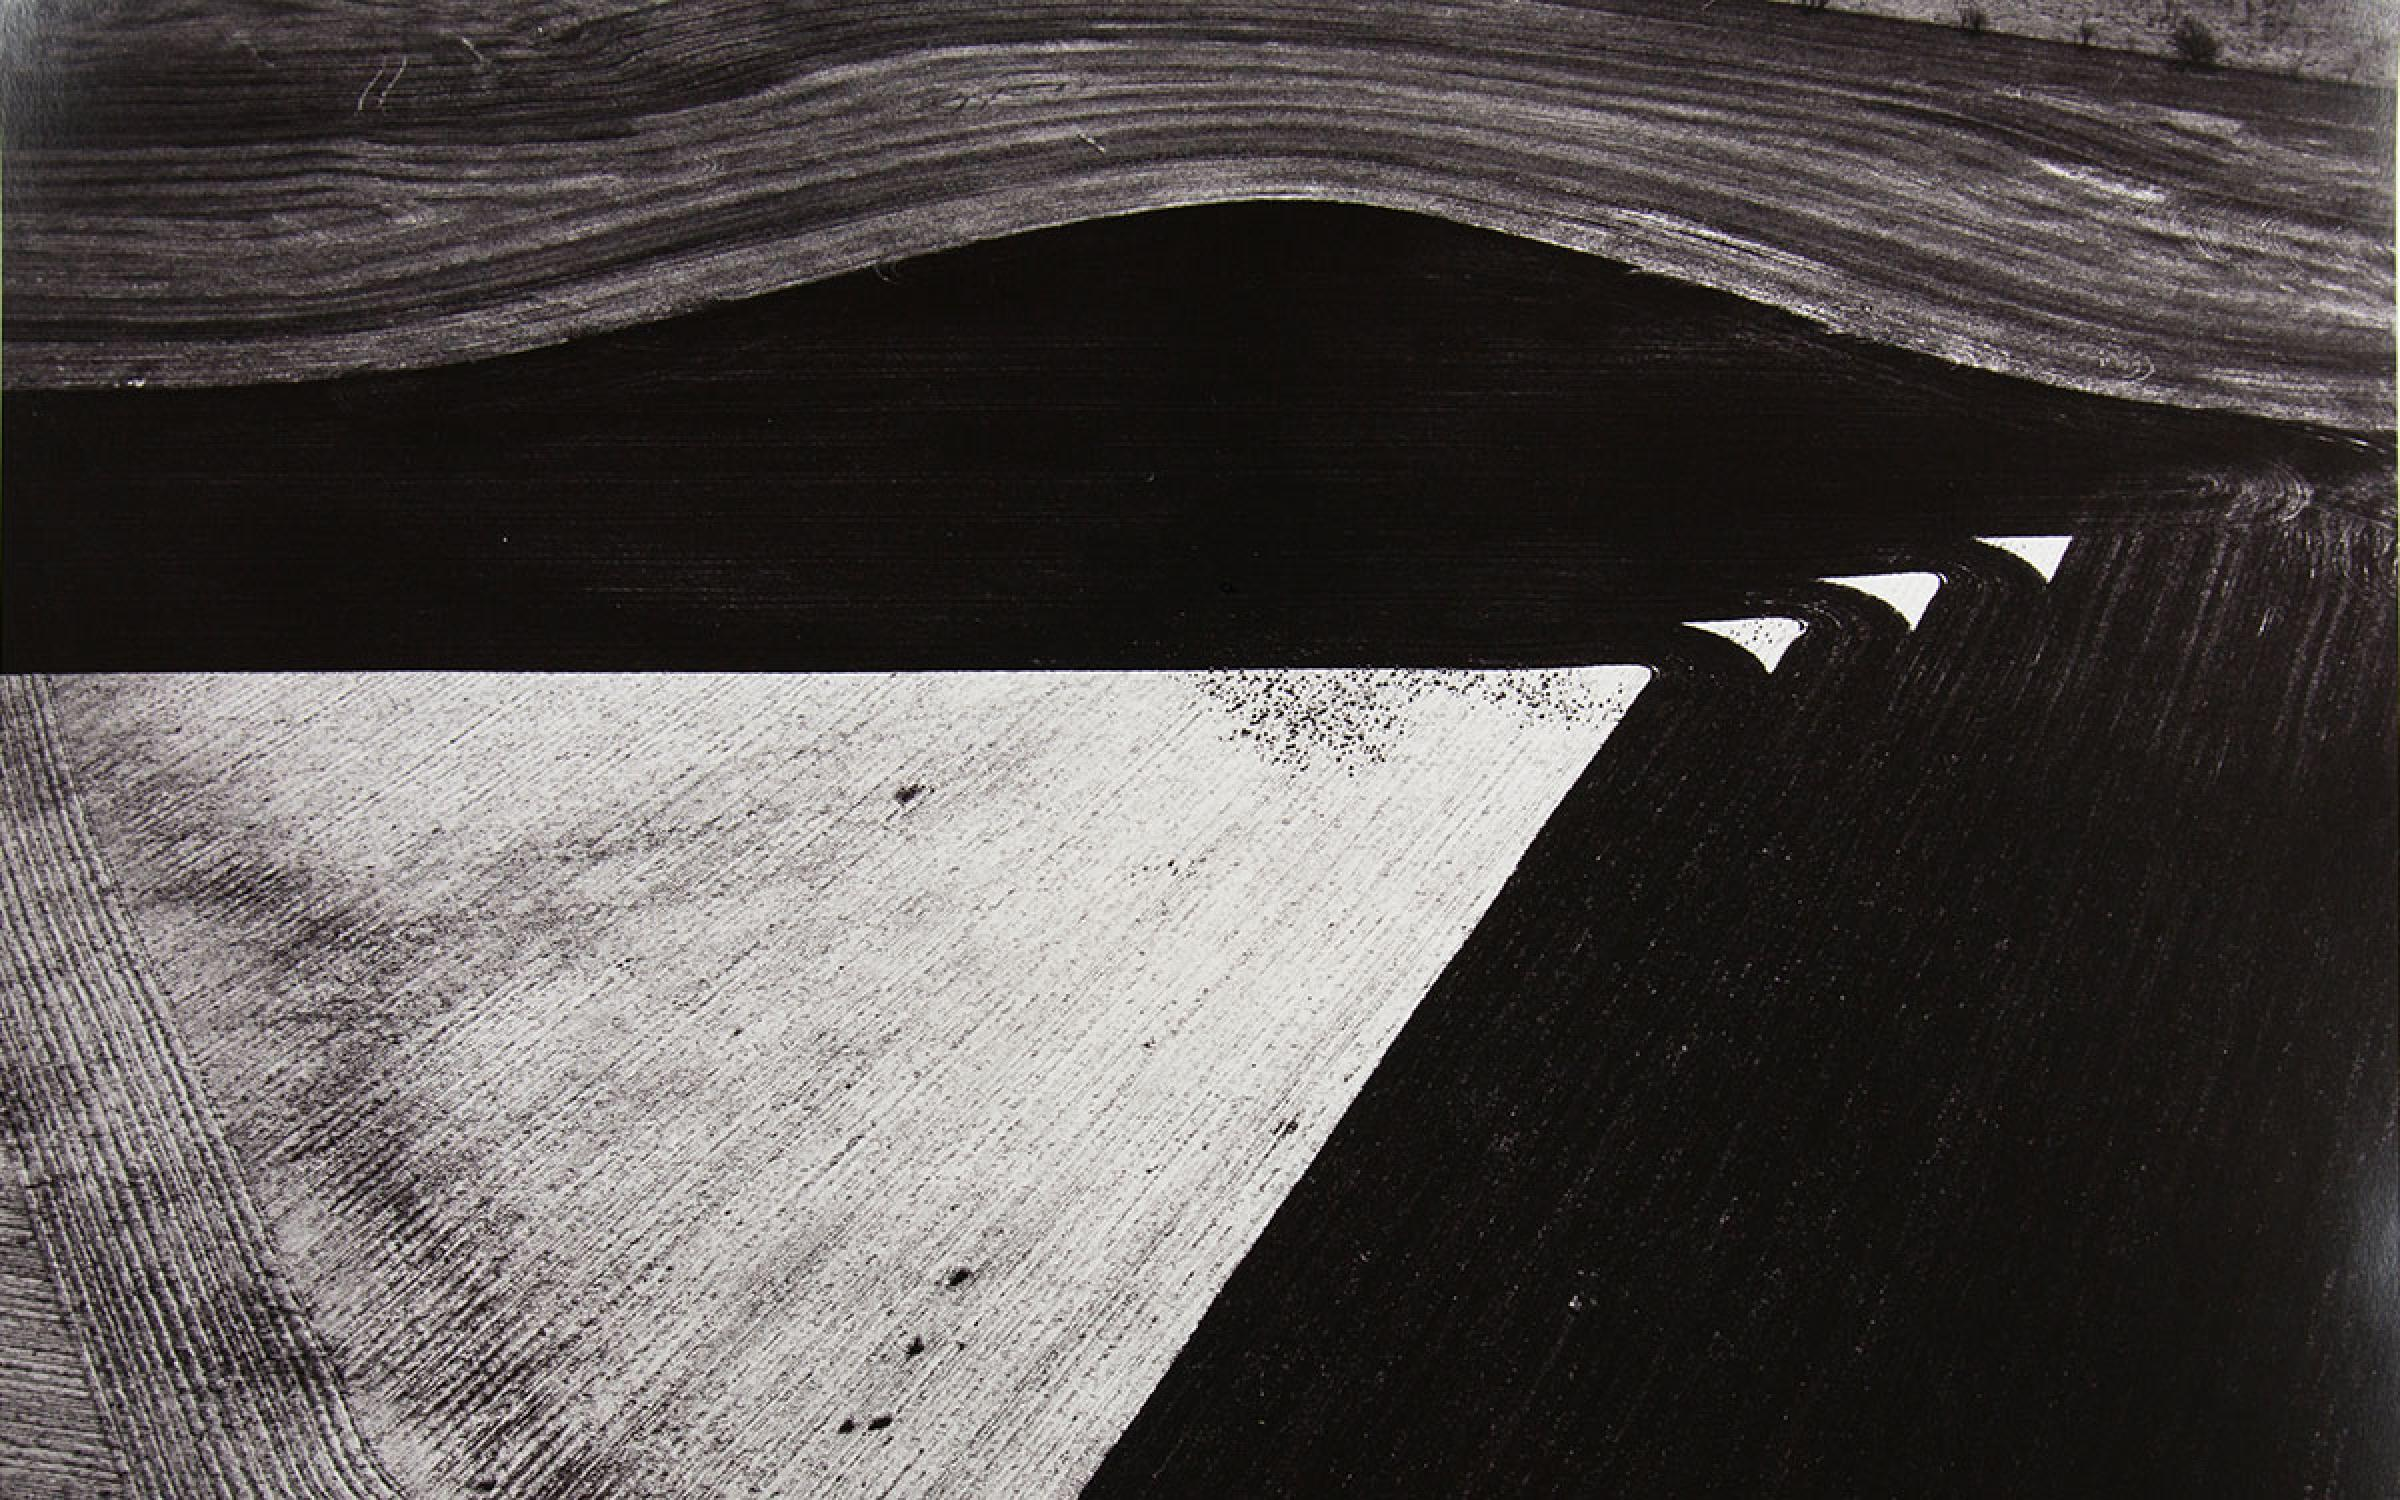 Geometrics, Lone Wolf, Oklahoma, 1987, Gelatin silver print, 14 3/4 x 18 3/4 inches, gift of George H. Speciale in memory of Tamie P. Speciale, UMFA2015.9.1